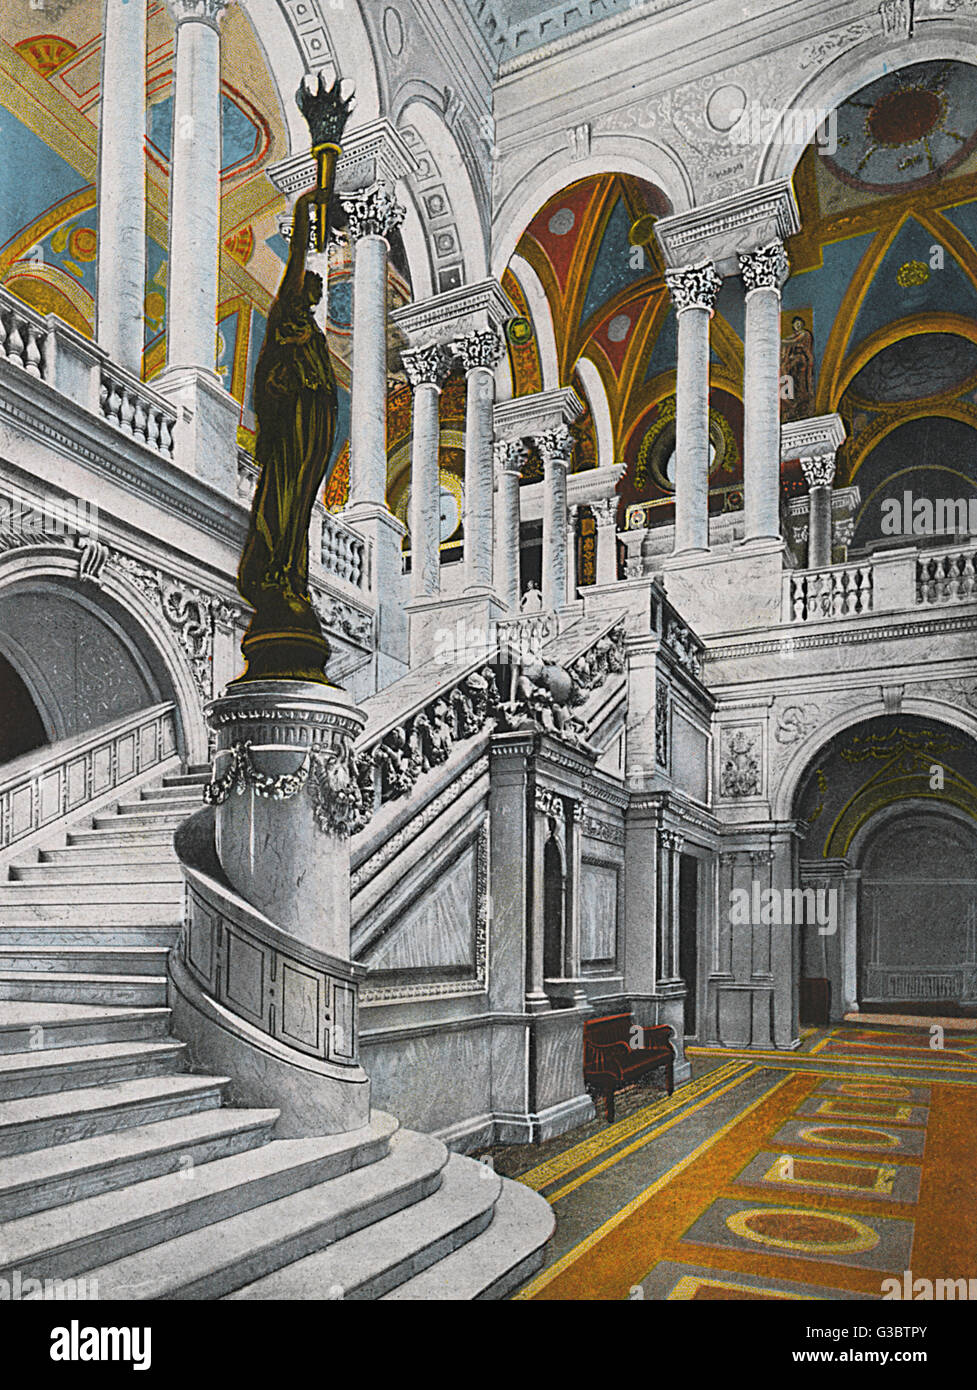 Washington DC, USA - Grand Stairway - Library of Congress entrance pavilion. The Bronze Torch Bearer by Philip H. - Stock Image